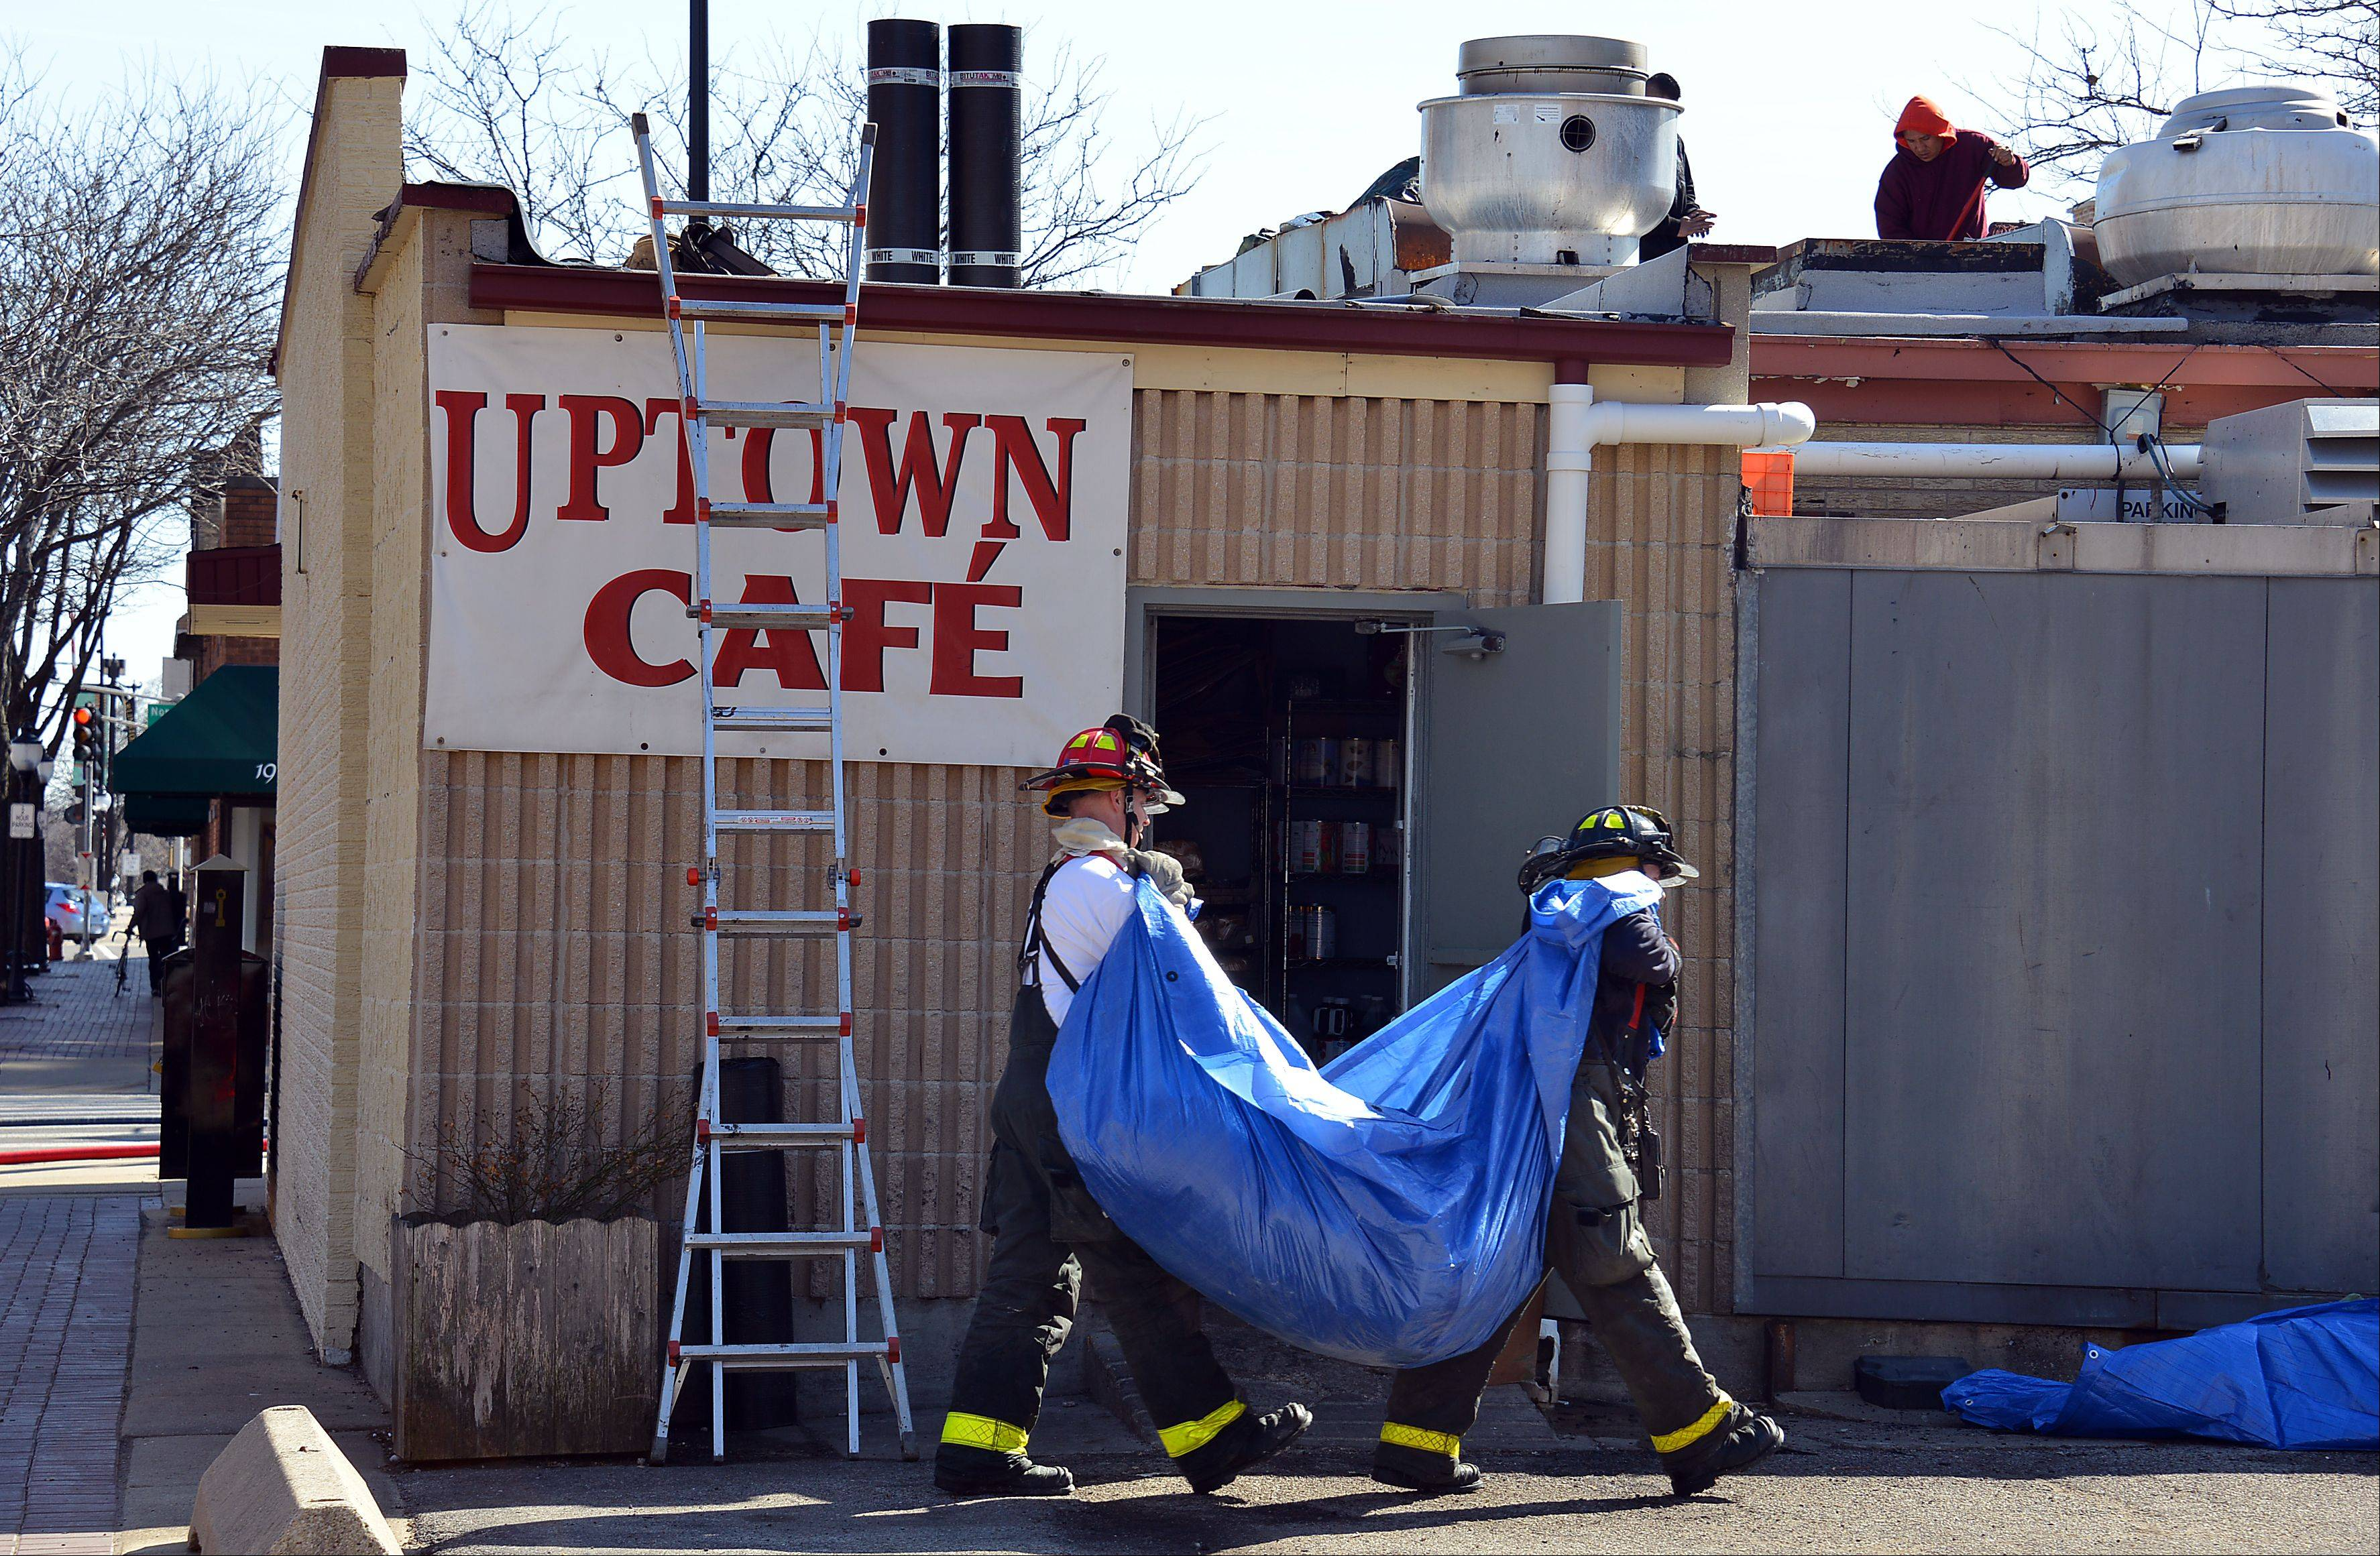 Arlington Heights firefighters carry away charred debris from inside the Uptown Cafe restaurant after a fire started there in the early afternoon on Wednesday.